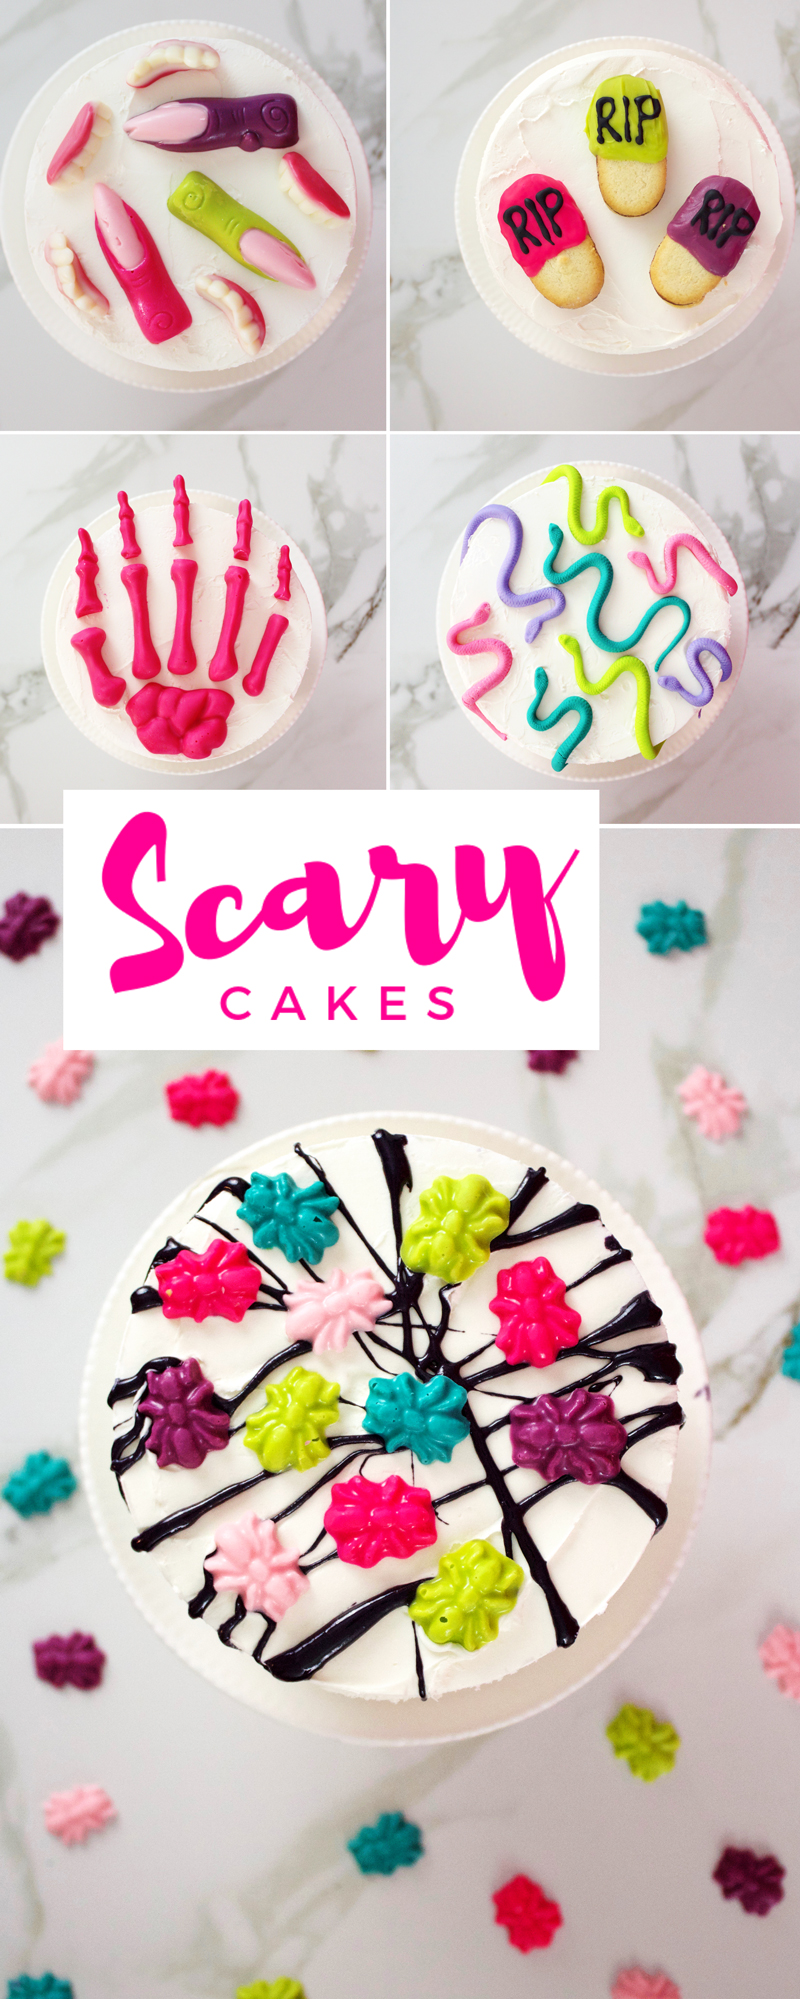 Incredible 5 Scary Cakes That Are Wildly Fun A Subtle Revelry Funny Birthday Cards Online Inifofree Goldxyz